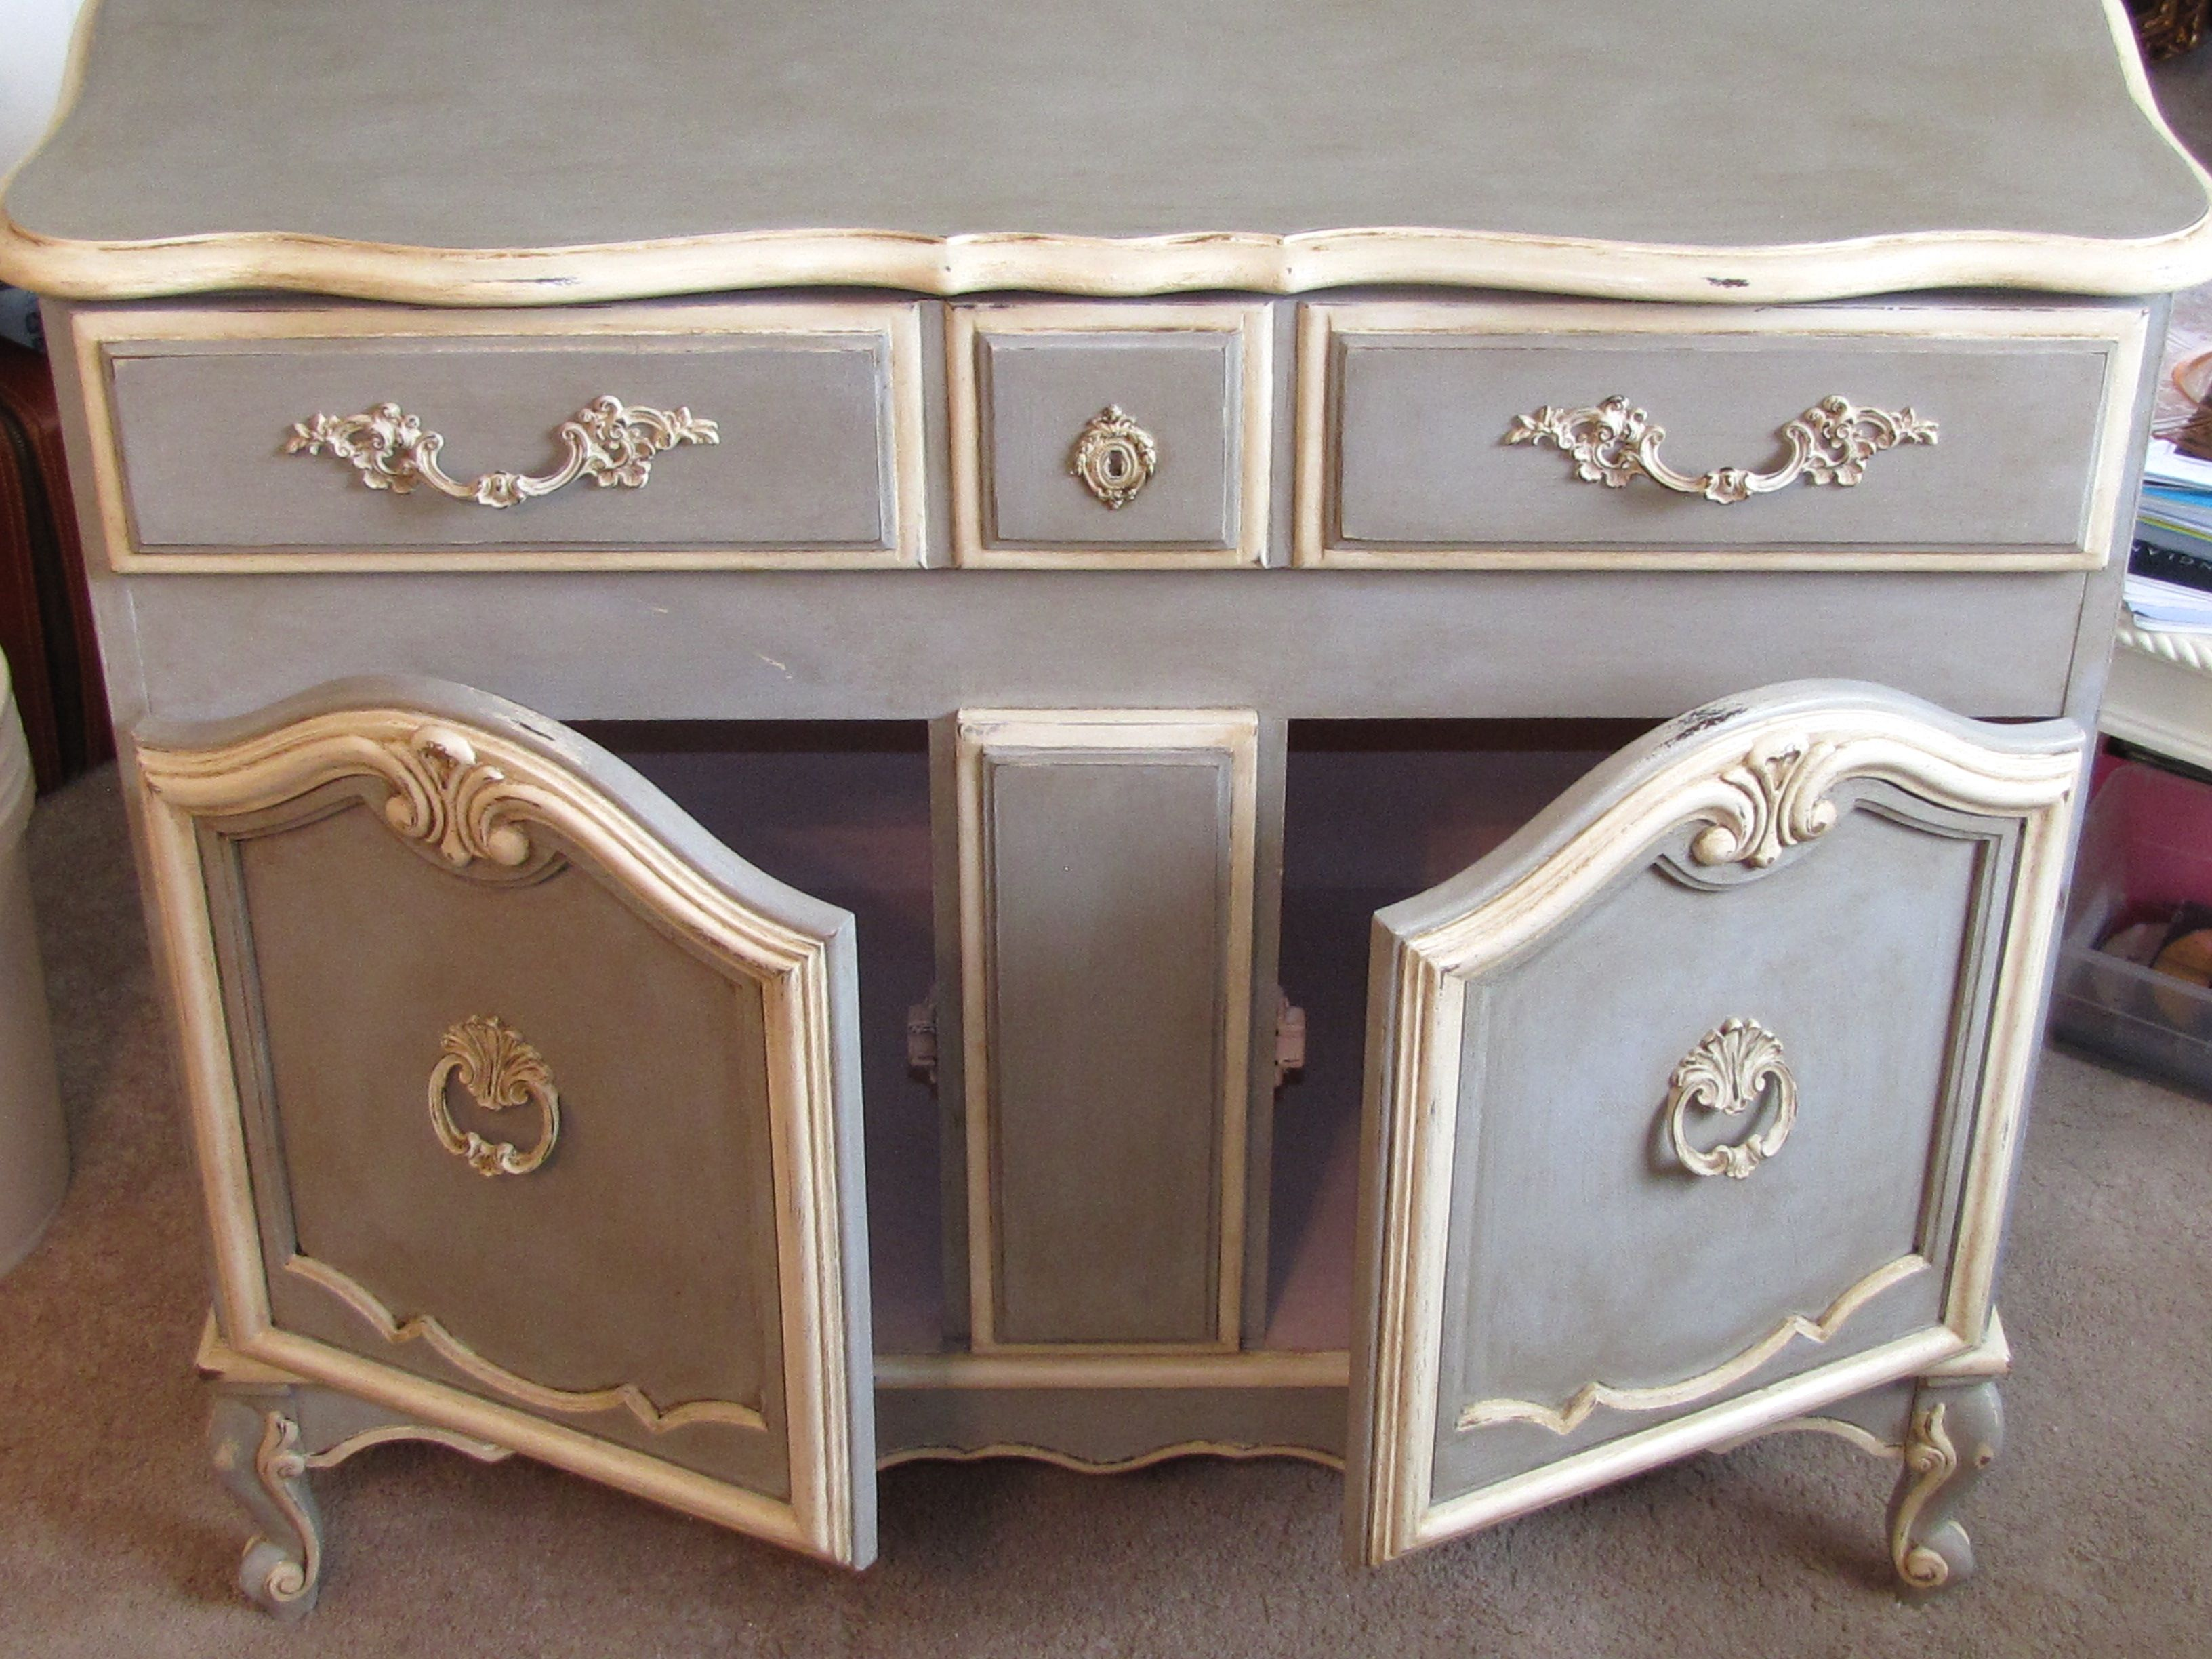 Painted In Annie Sloan Chalk Paint Paris Grey And Old